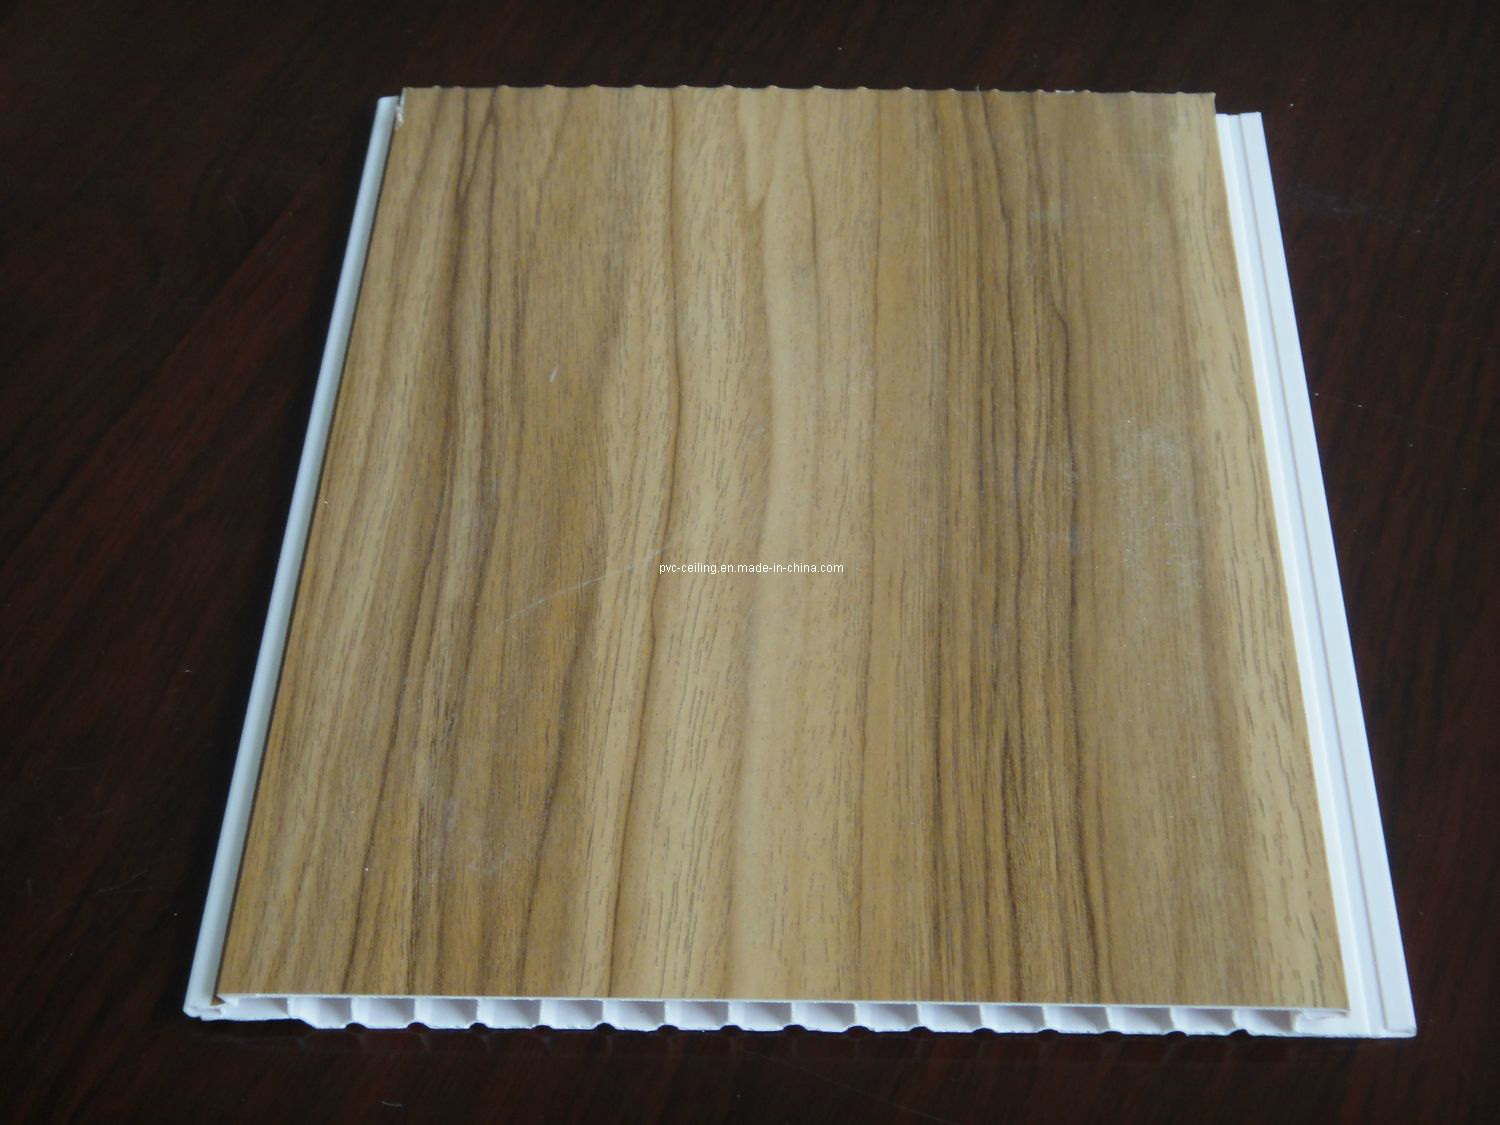 Haining longtan decoration material co ltd proveedor - Panel madera pared ...